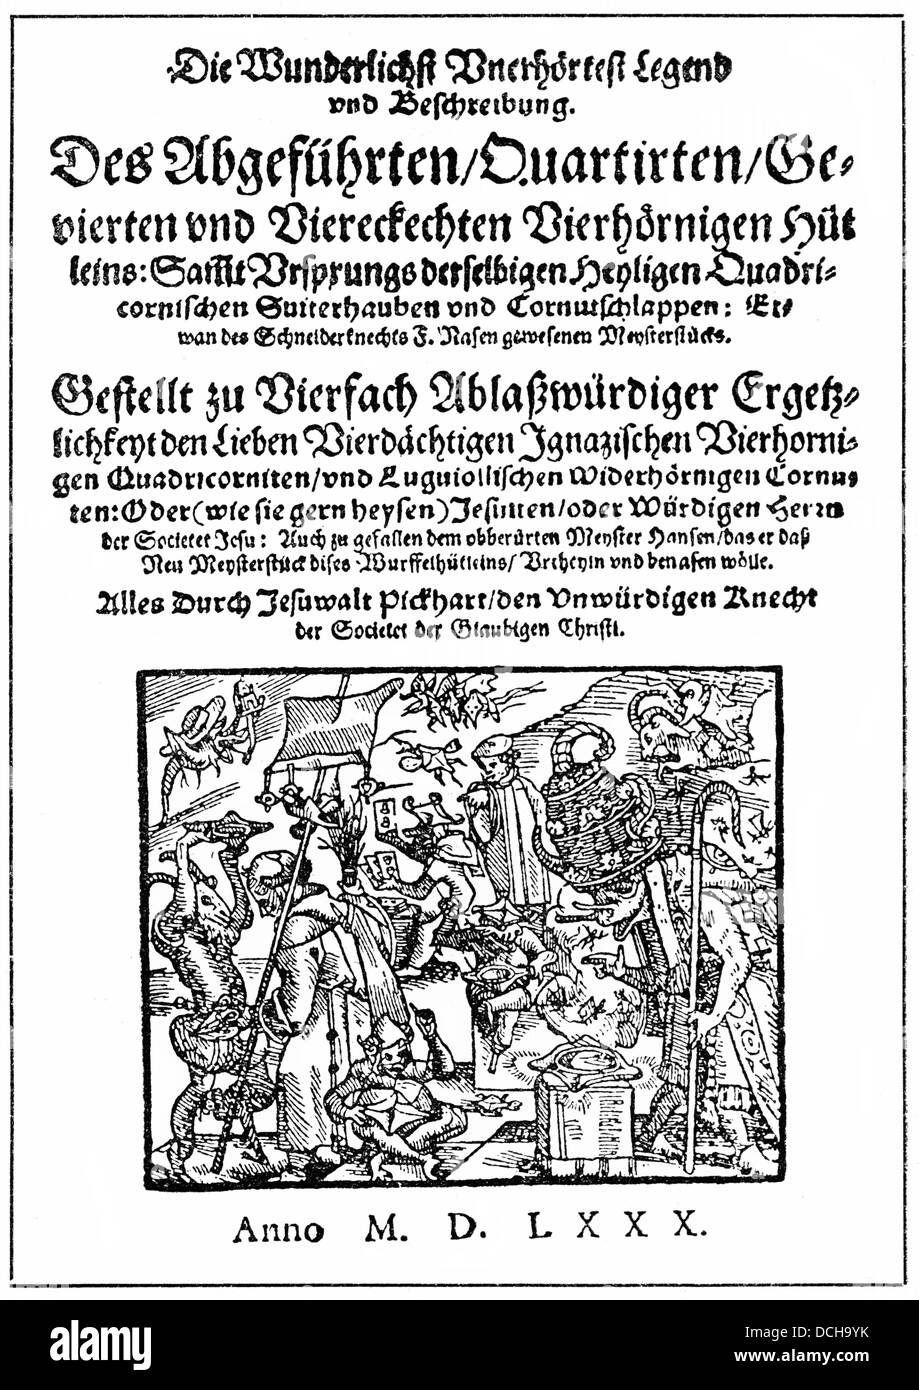 Satirical pamphlet from 1580 against the Jesuits, the Jesuiten-Huetlein - Stock Image